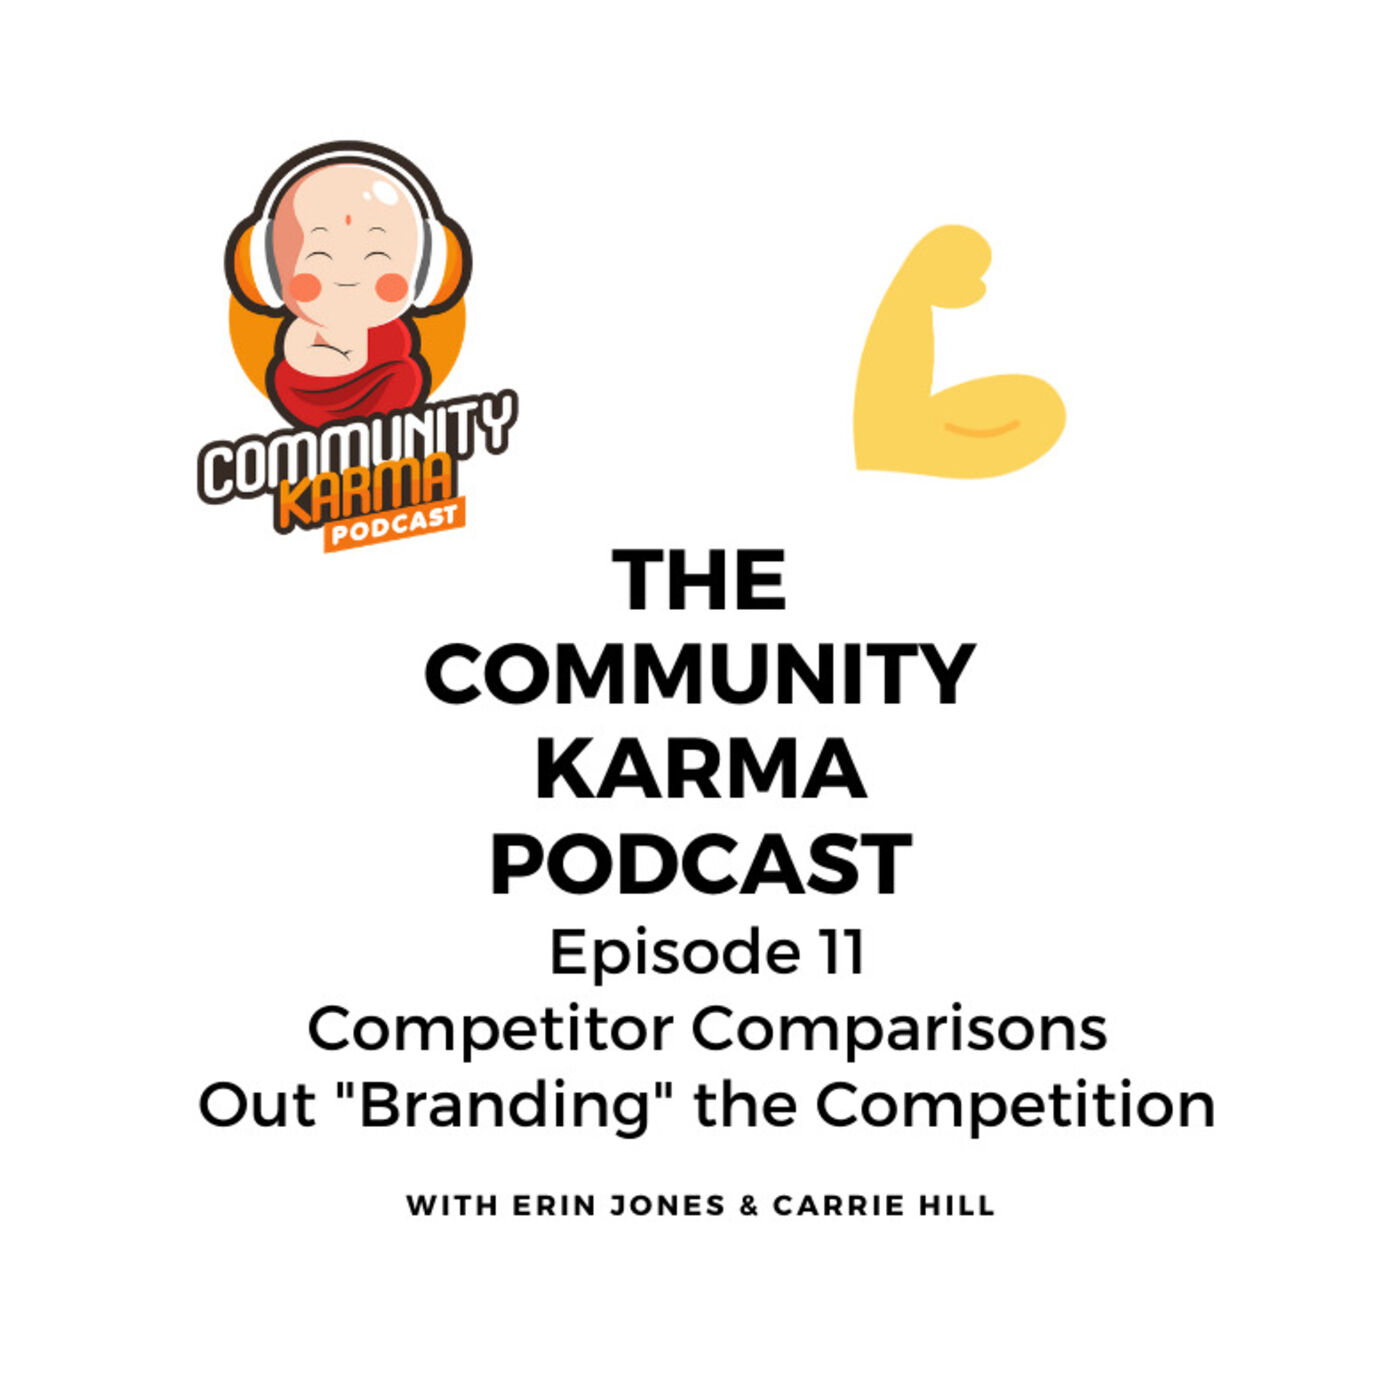 """Episode 11: Competitor Comparisons - Out """"Branding"""" the Competition"""